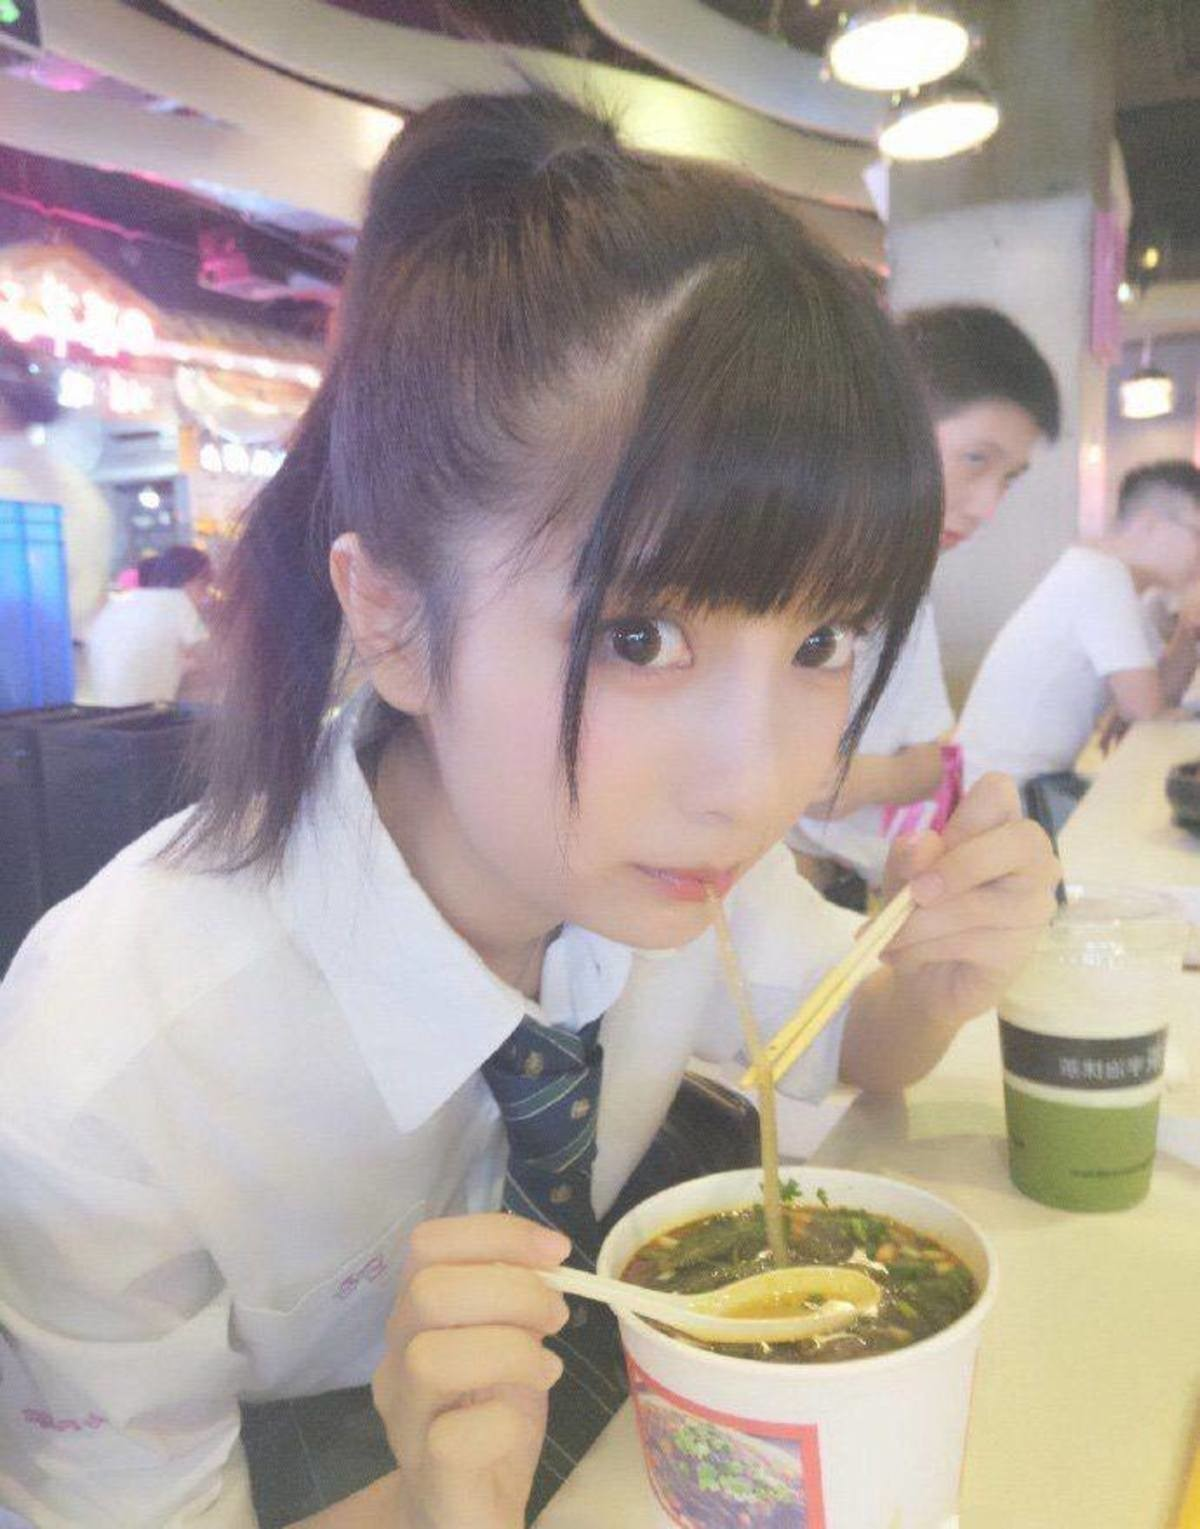 Sip. join list: Lewds4DHeart (1610 subs)Mention History join list:. That face. She wants to just eat her noodles.